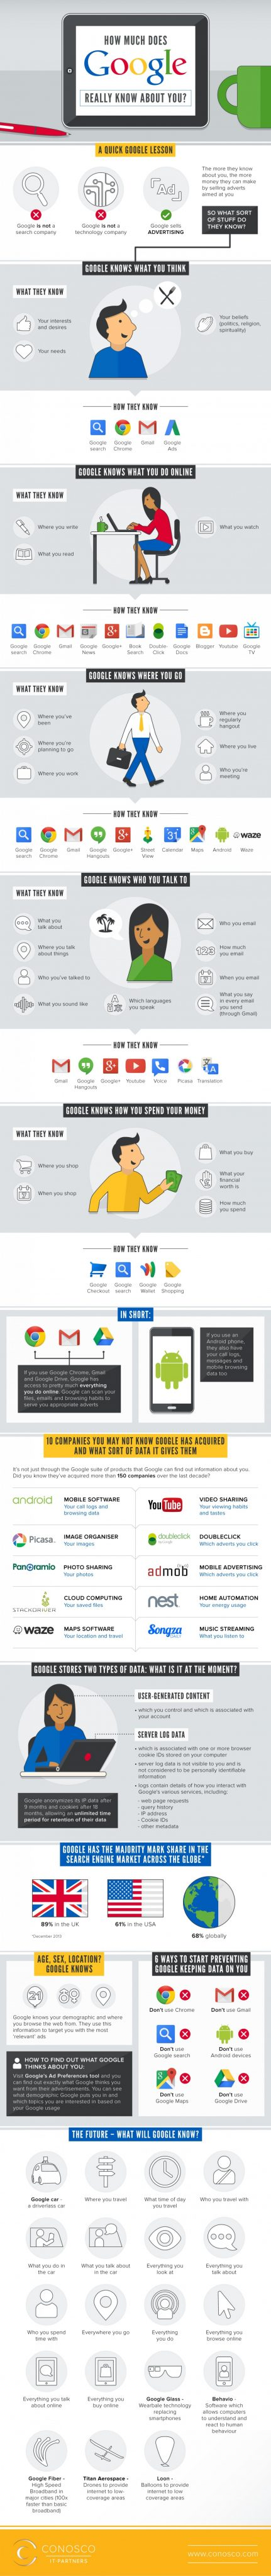 Infographic: How Much Does Google Really Know About You? Infographic